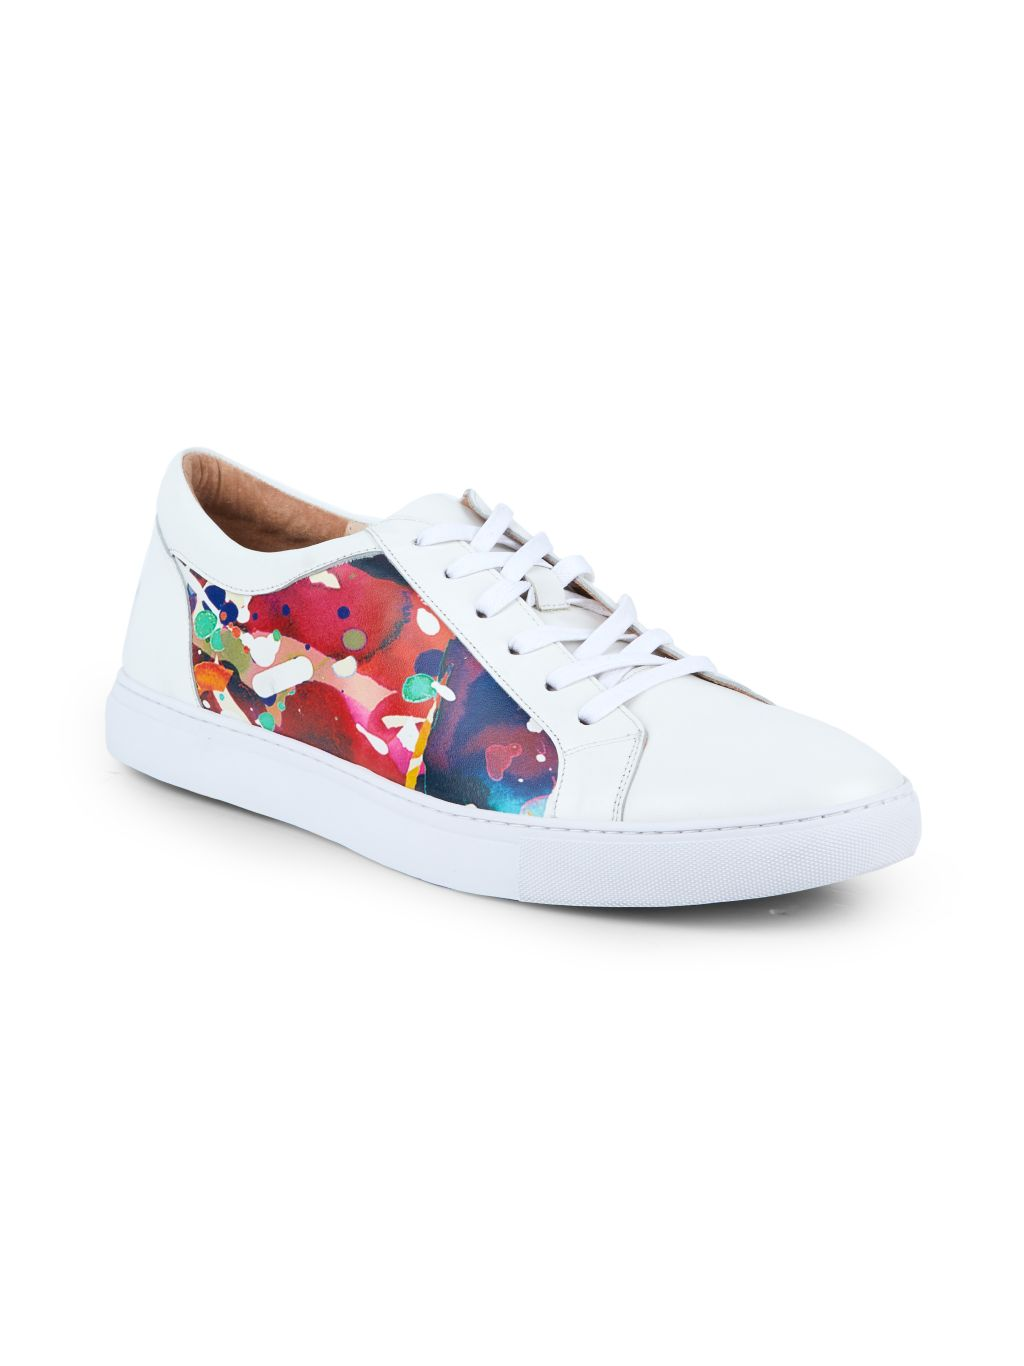 Robert Graham Ignition Printed Leather Sneakers